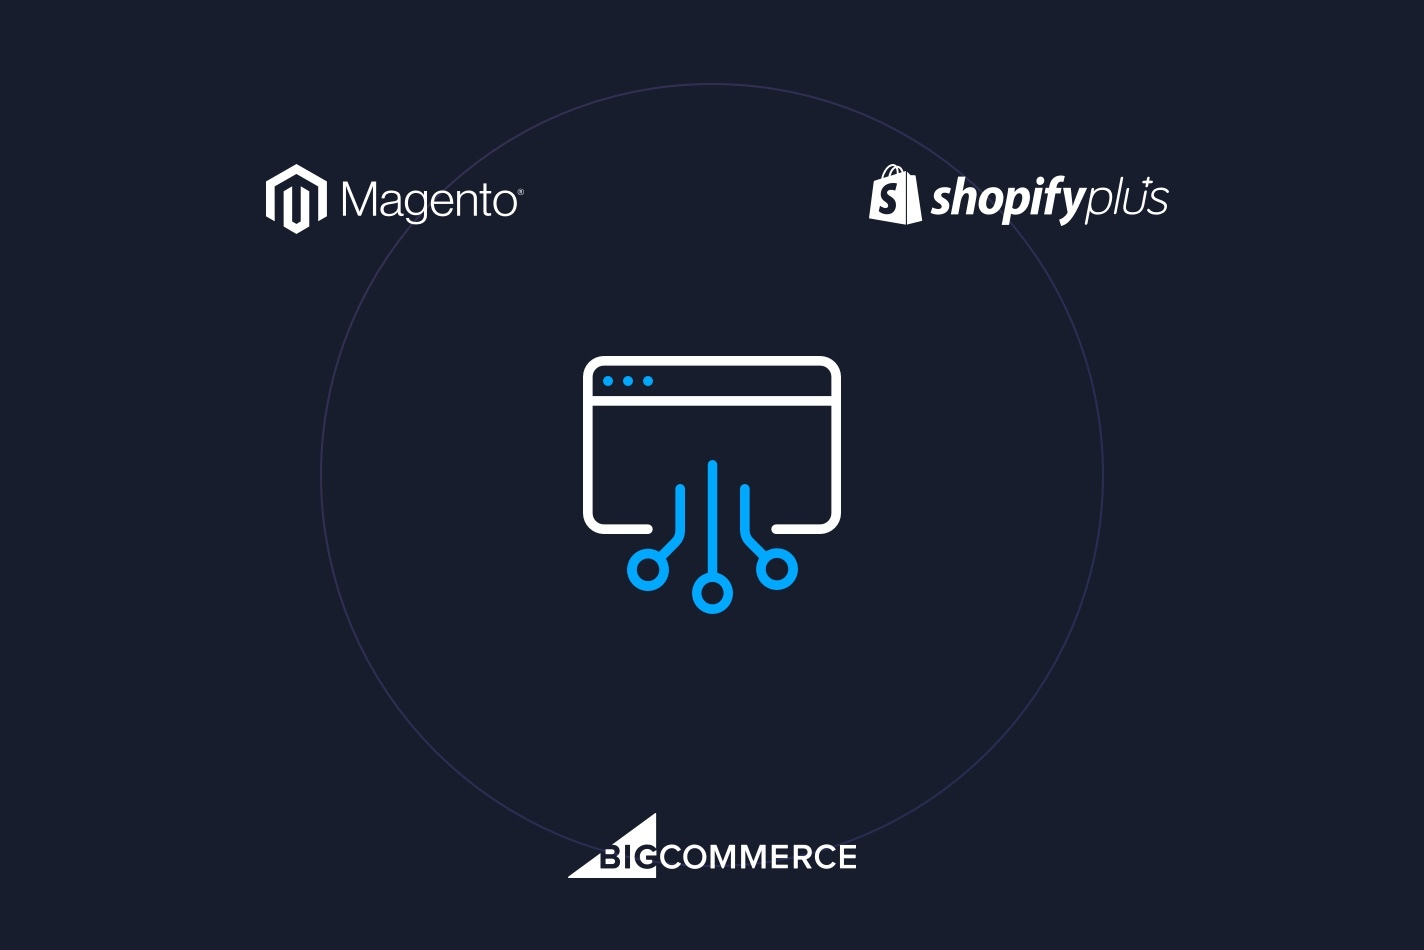 PWAs for ecommerce from Digital Six